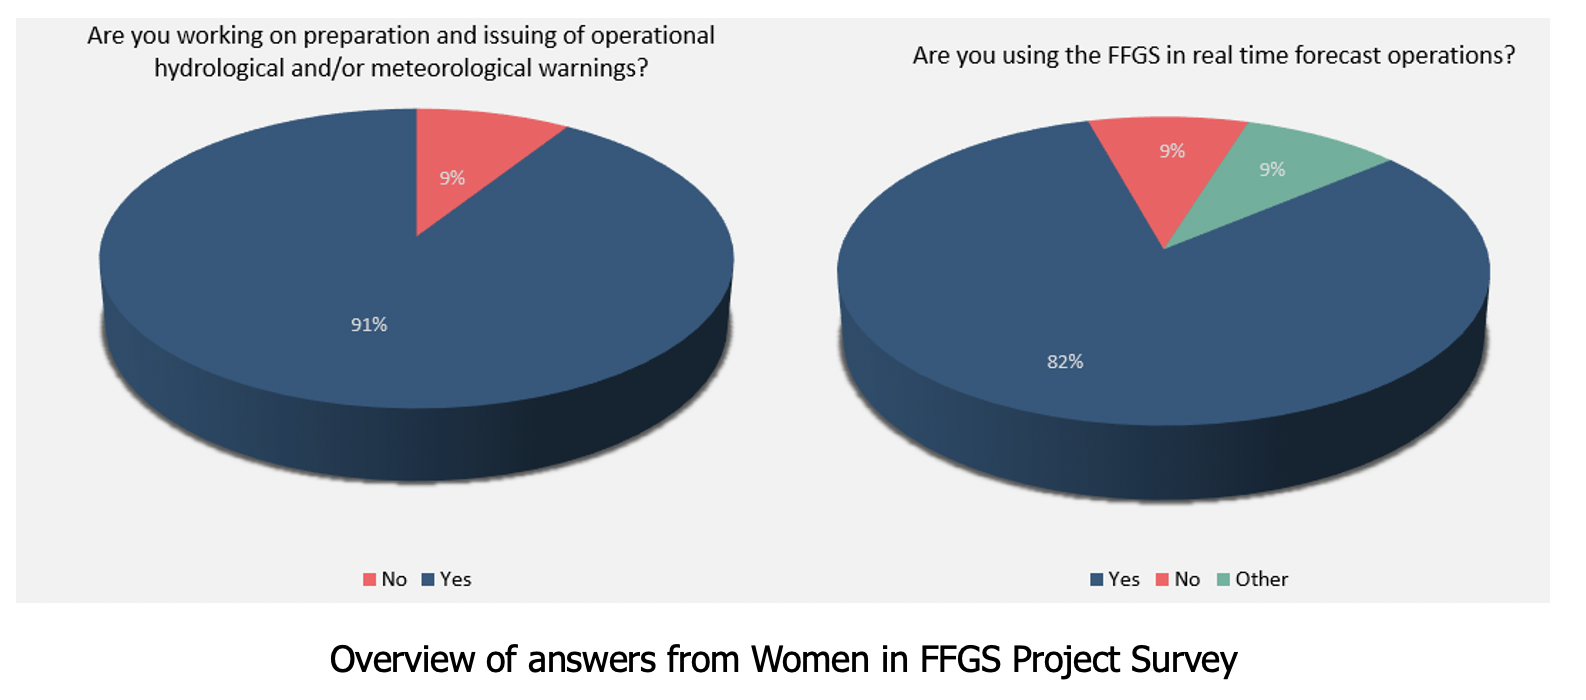 Overview of answers from Women in FFGS Project Survey